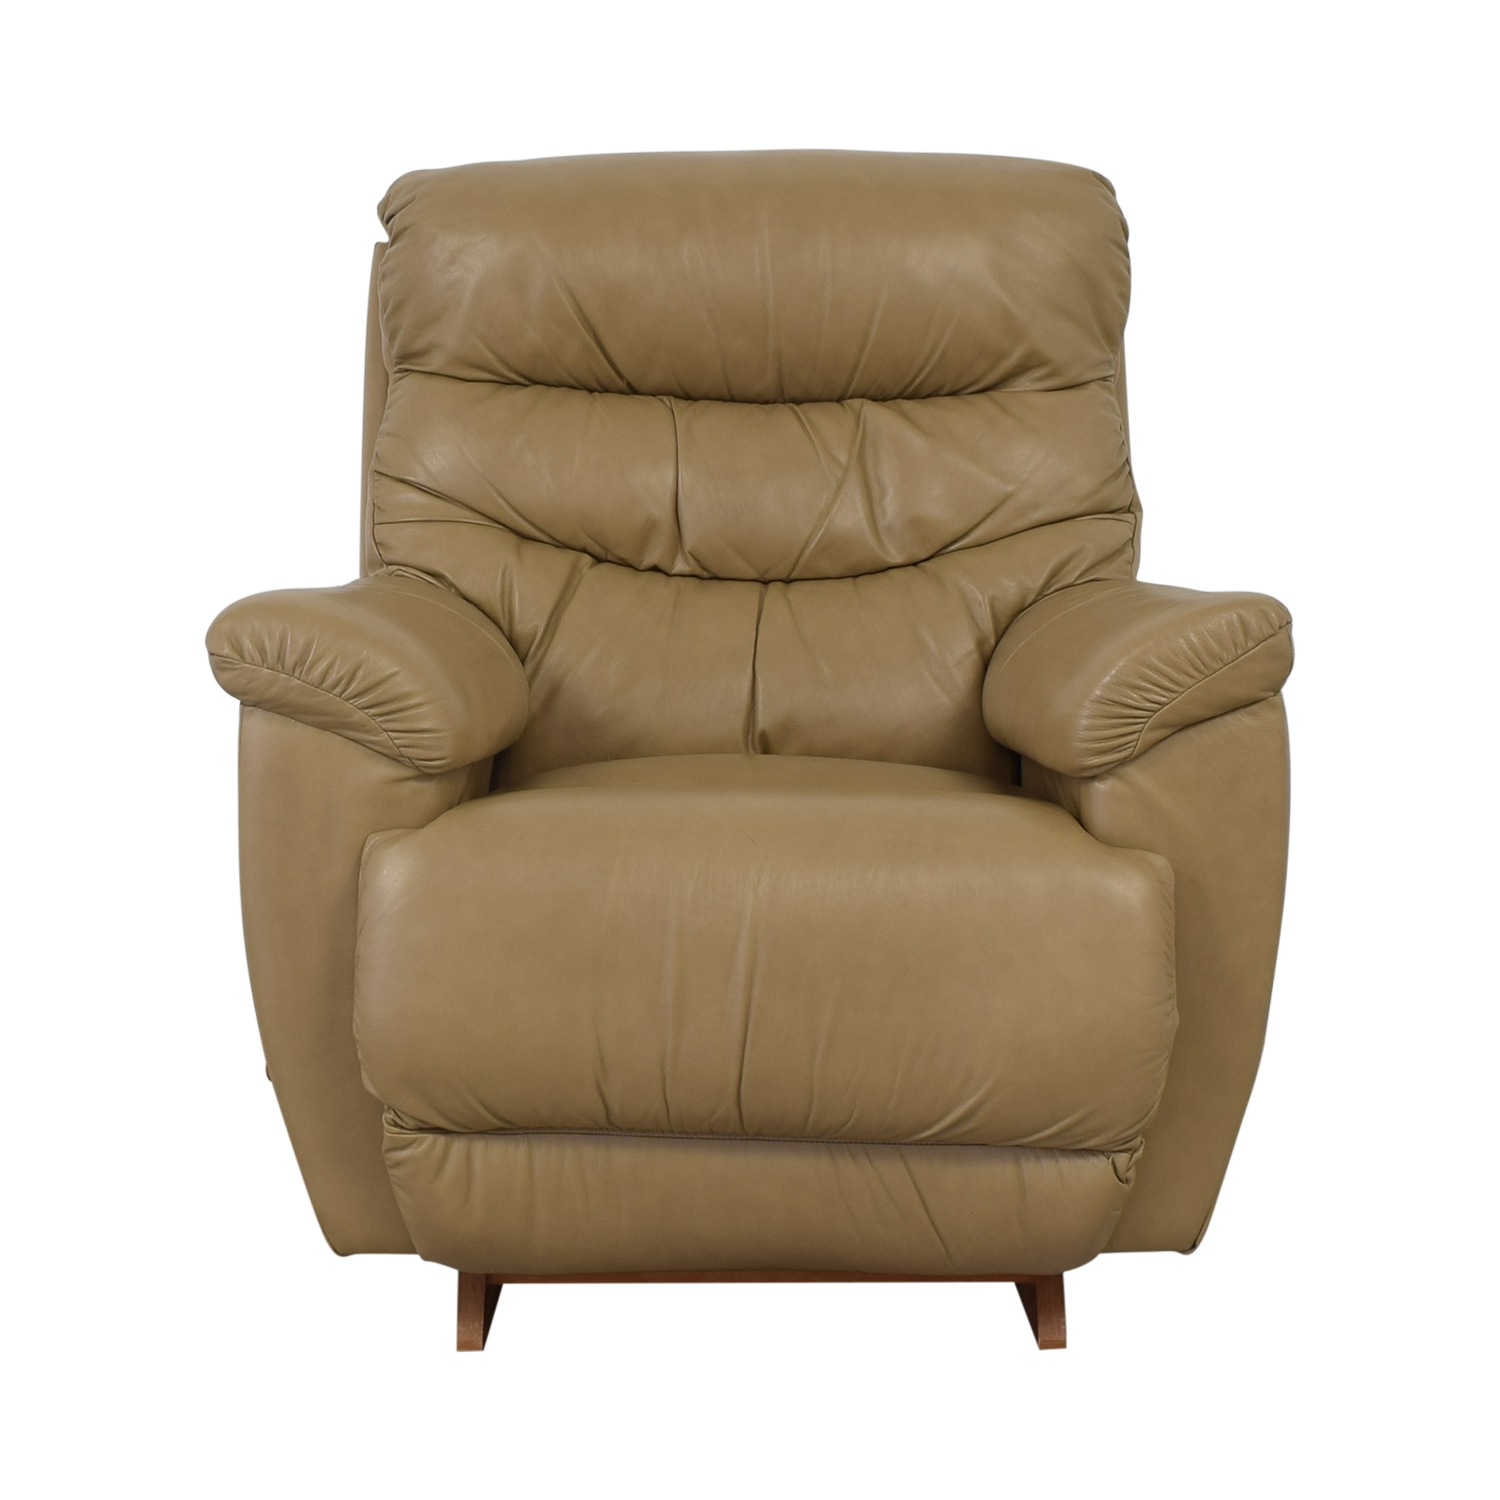 buy La-Z-Boy Leather Recliner La-Z-Boy